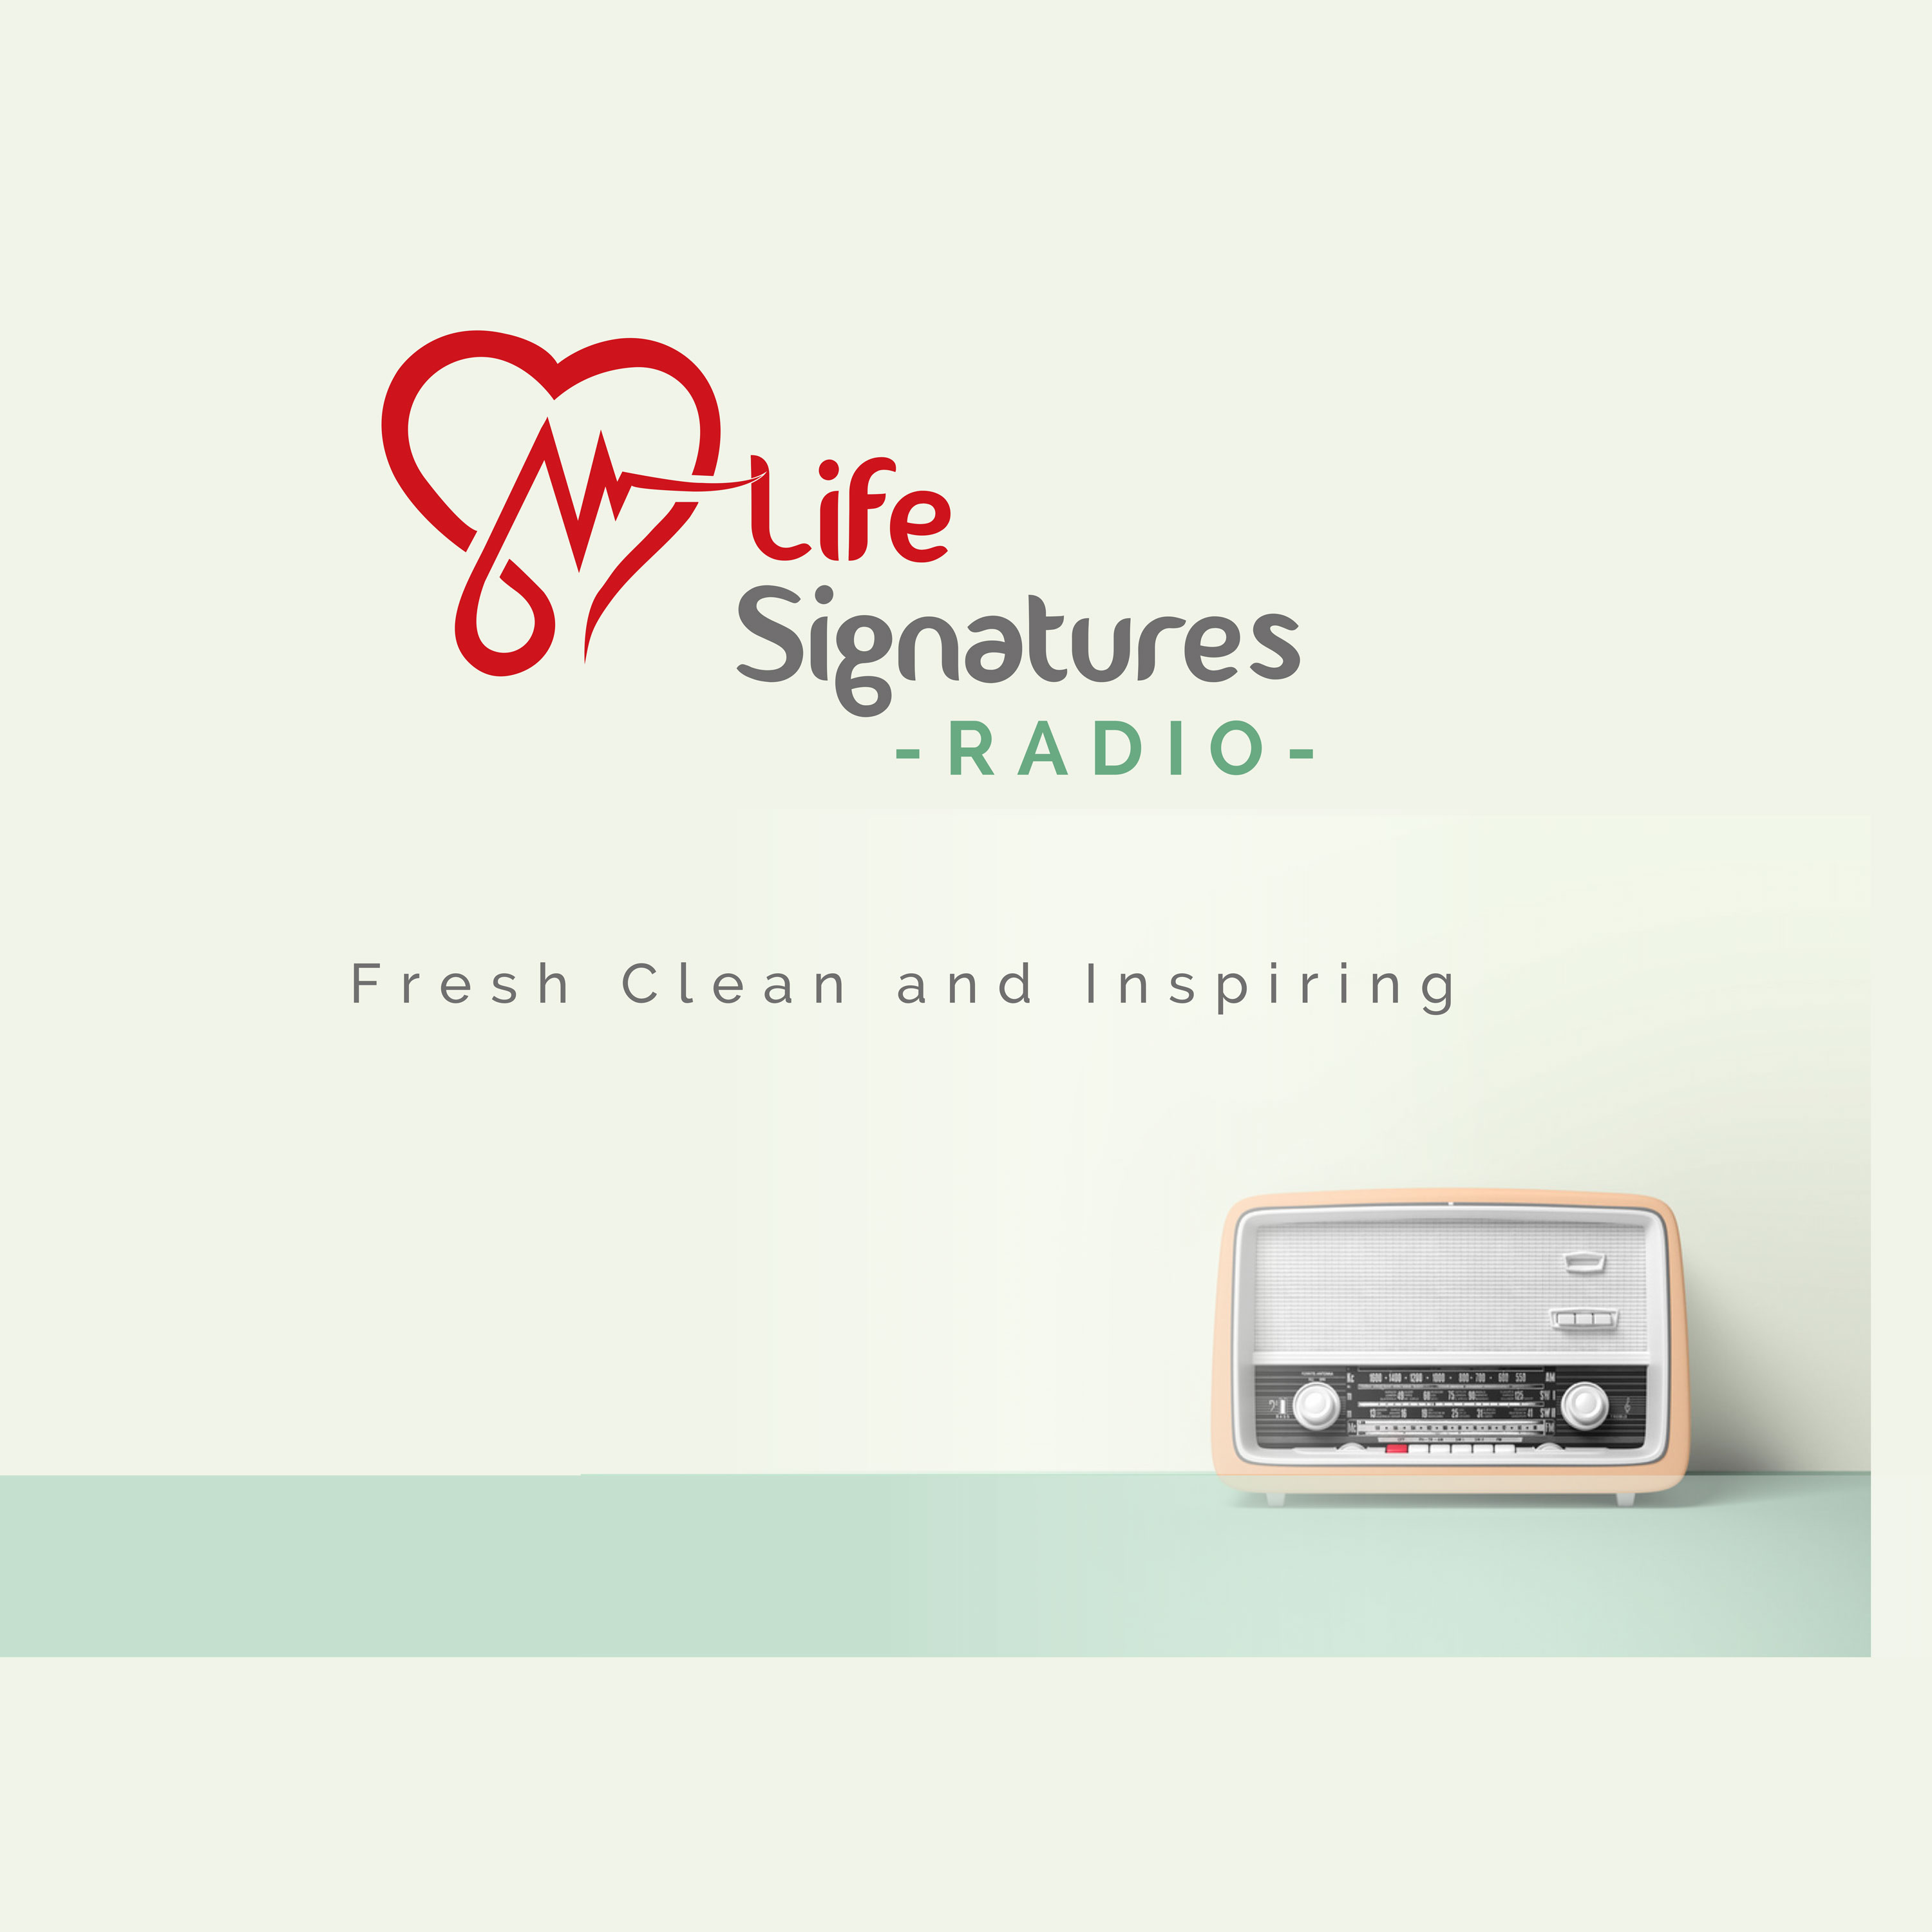 Discovering And Living Purpose on Life Signatures Radio show art